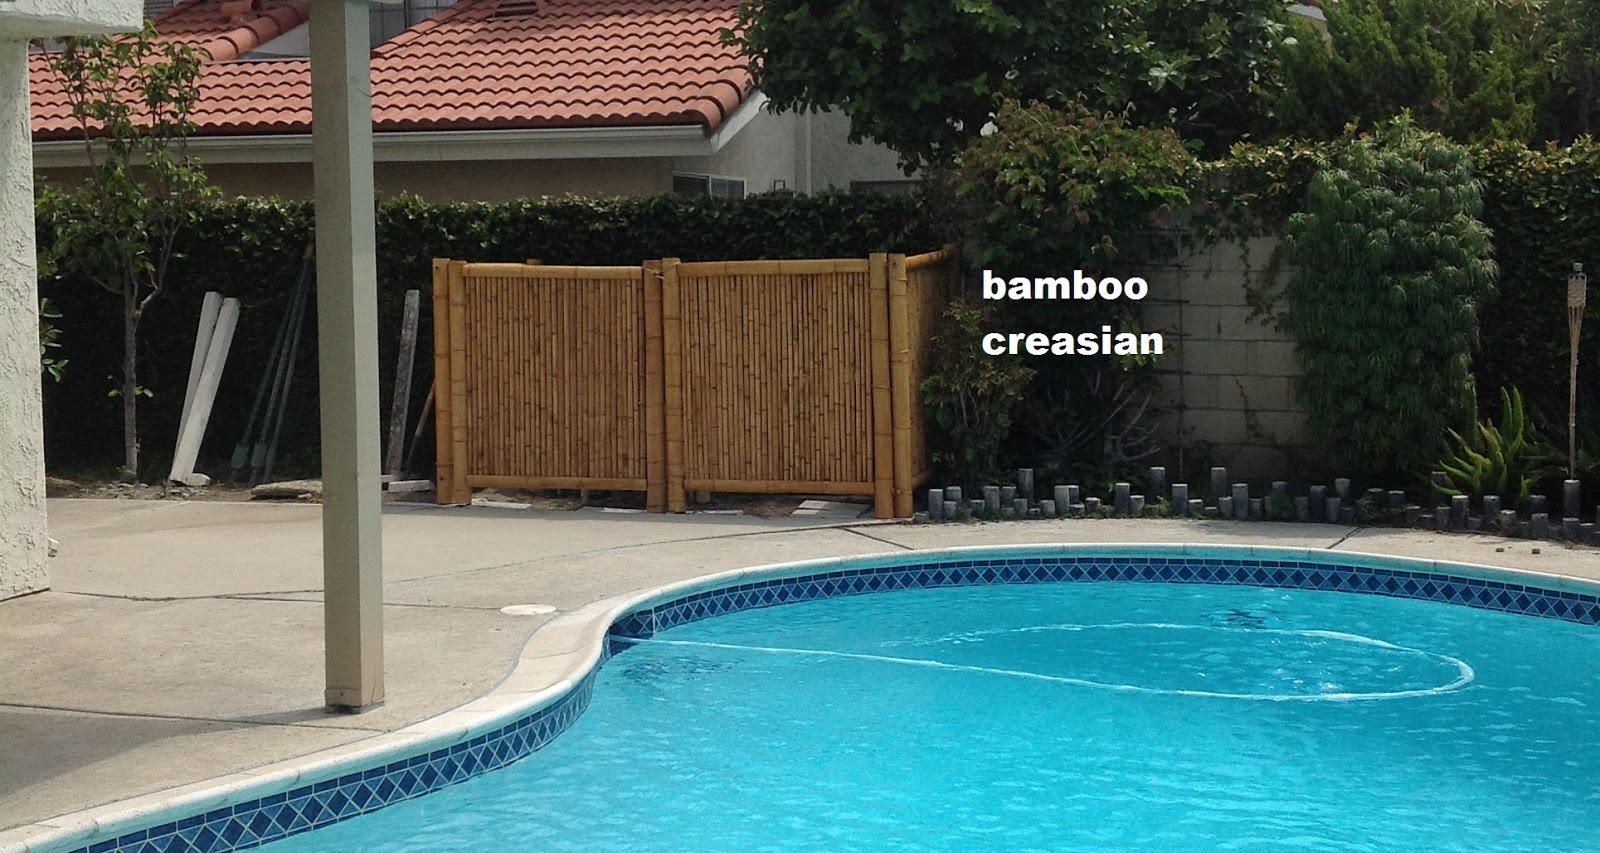 bamboo fencing products are selected durable bamboo cane made from the straight poles are harvested at least 3 years old to get old enough